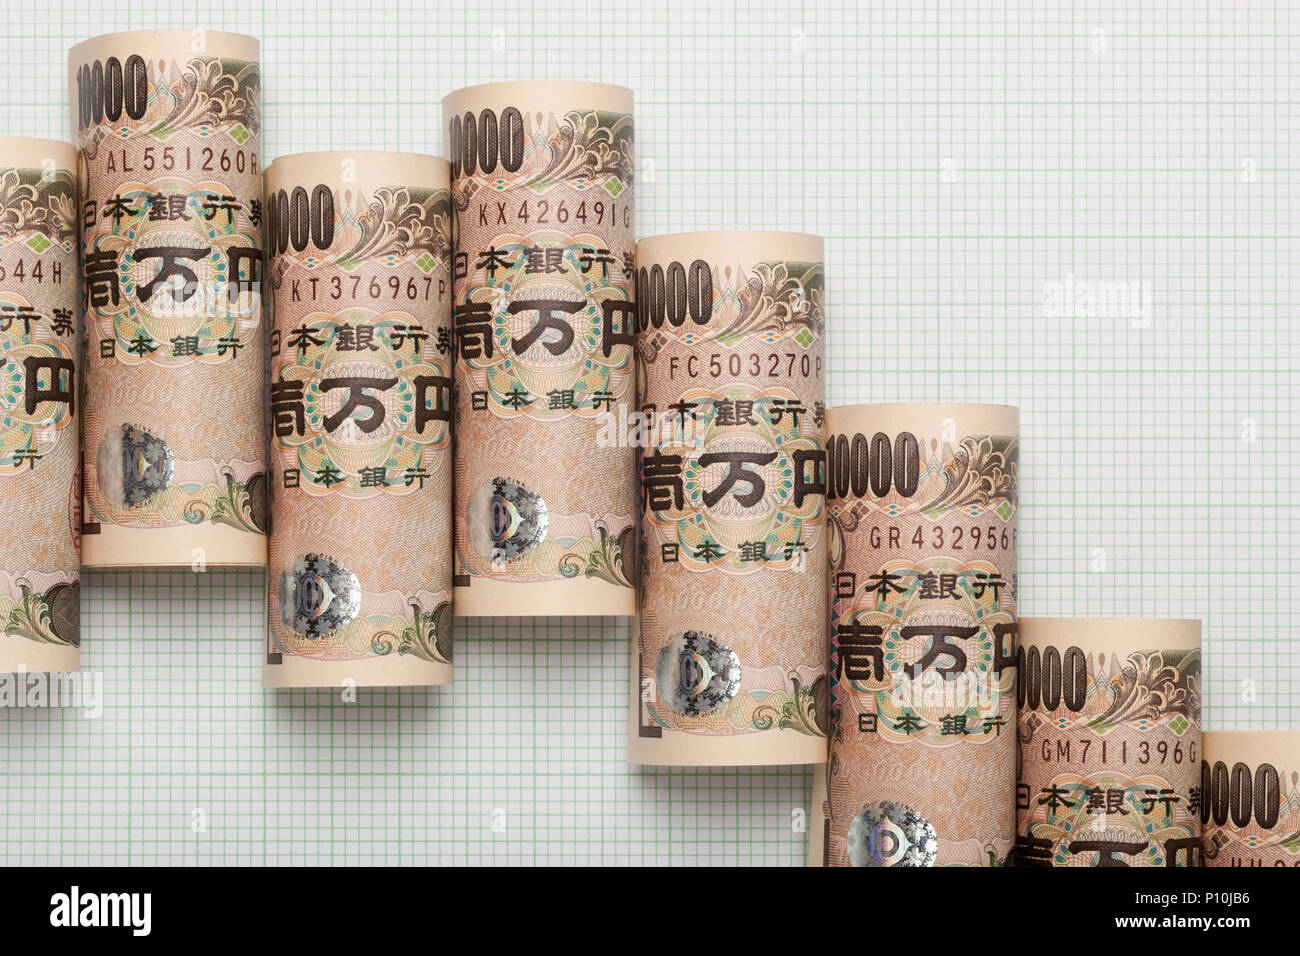 Japanese Yen forming an downtrend graph - Stock Image